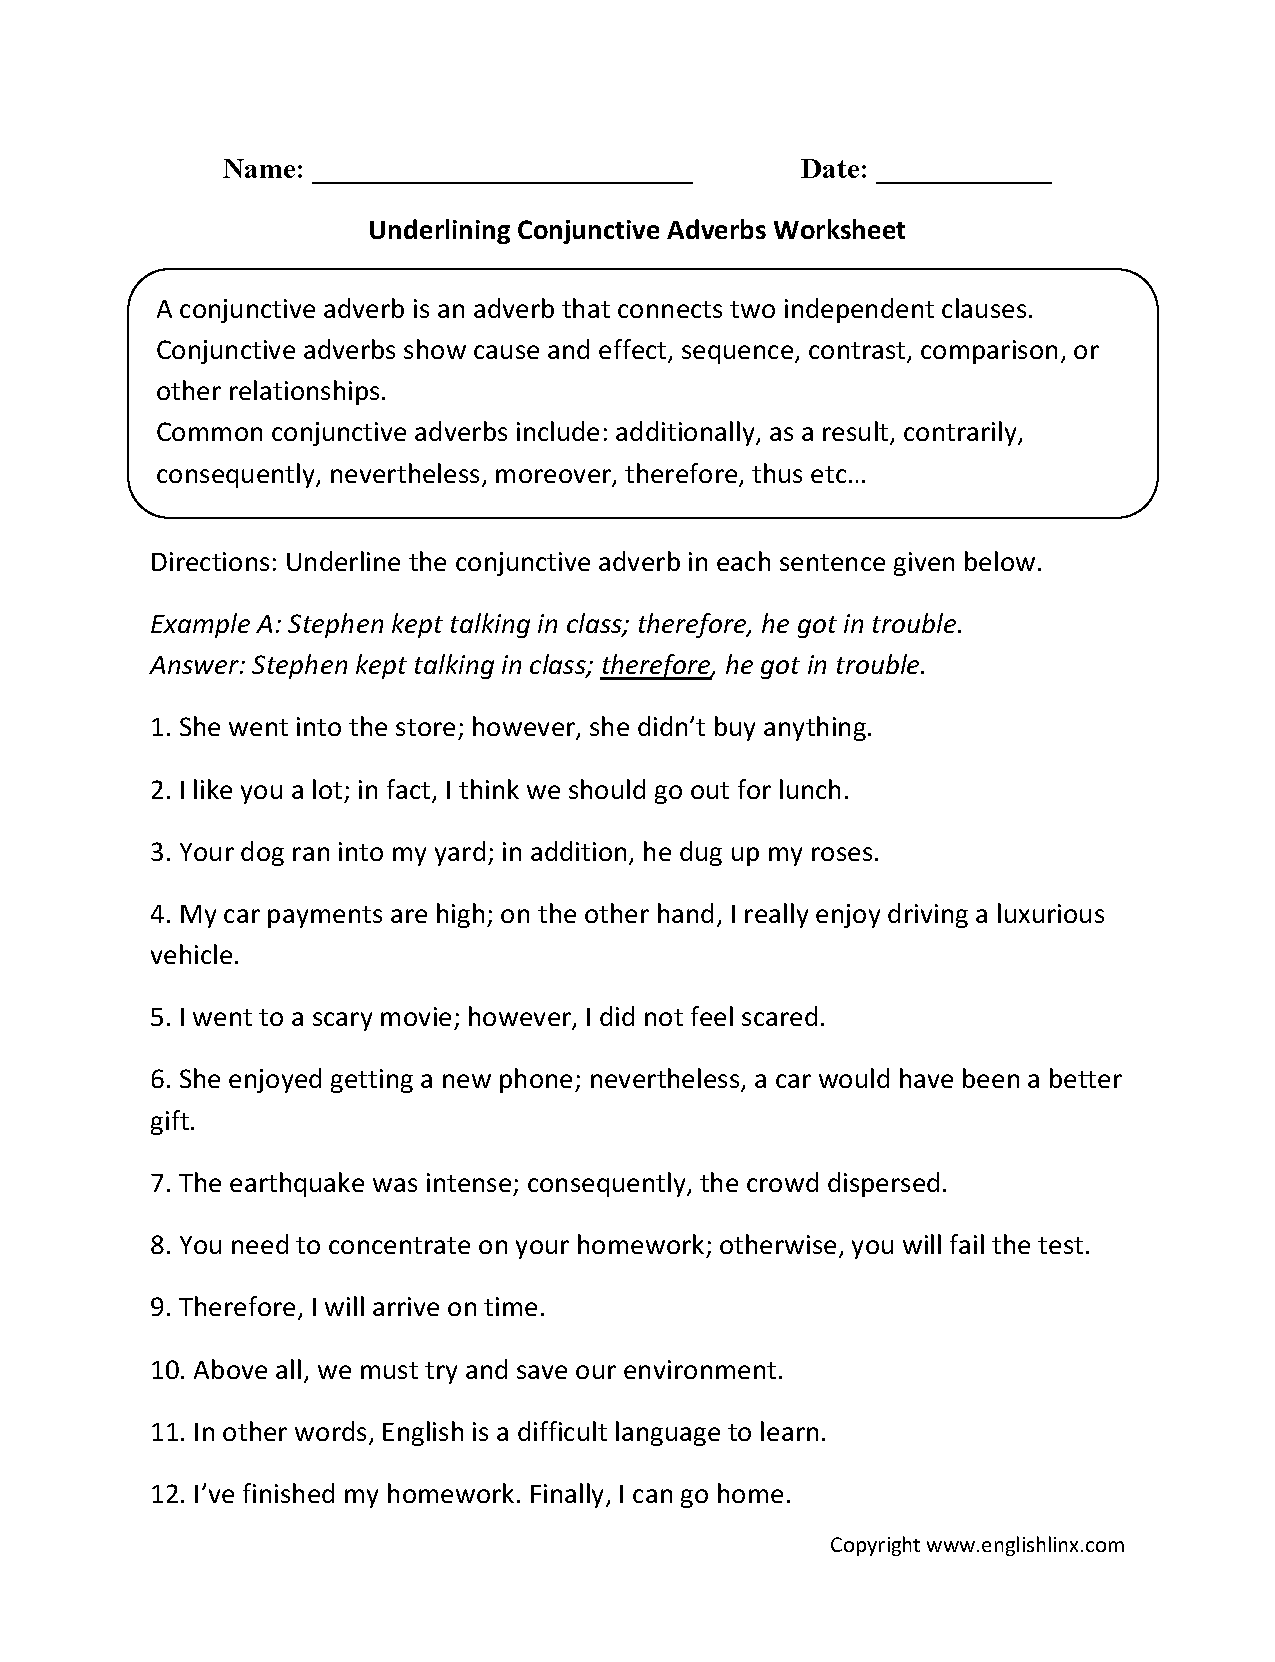 Aldiablosus  Splendid Englishlinxcom  Conjunctions Worksheets With Great Worksheet With Astonishing Health And Safety At Work Worksheets Also Free Letter Worksheets For Preschool In Addition History Comprehension Worksheets And Private Peaceful Worksheets As Well As Basic Electricity Worksheets Additionally Percentage Worksheets For Th Grade From Englishlinxcom With Aldiablosus  Great Englishlinxcom  Conjunctions Worksheets With Astonishing Worksheet And Splendid Health And Safety At Work Worksheets Also Free Letter Worksheets For Preschool In Addition History Comprehension Worksheets From Englishlinxcom